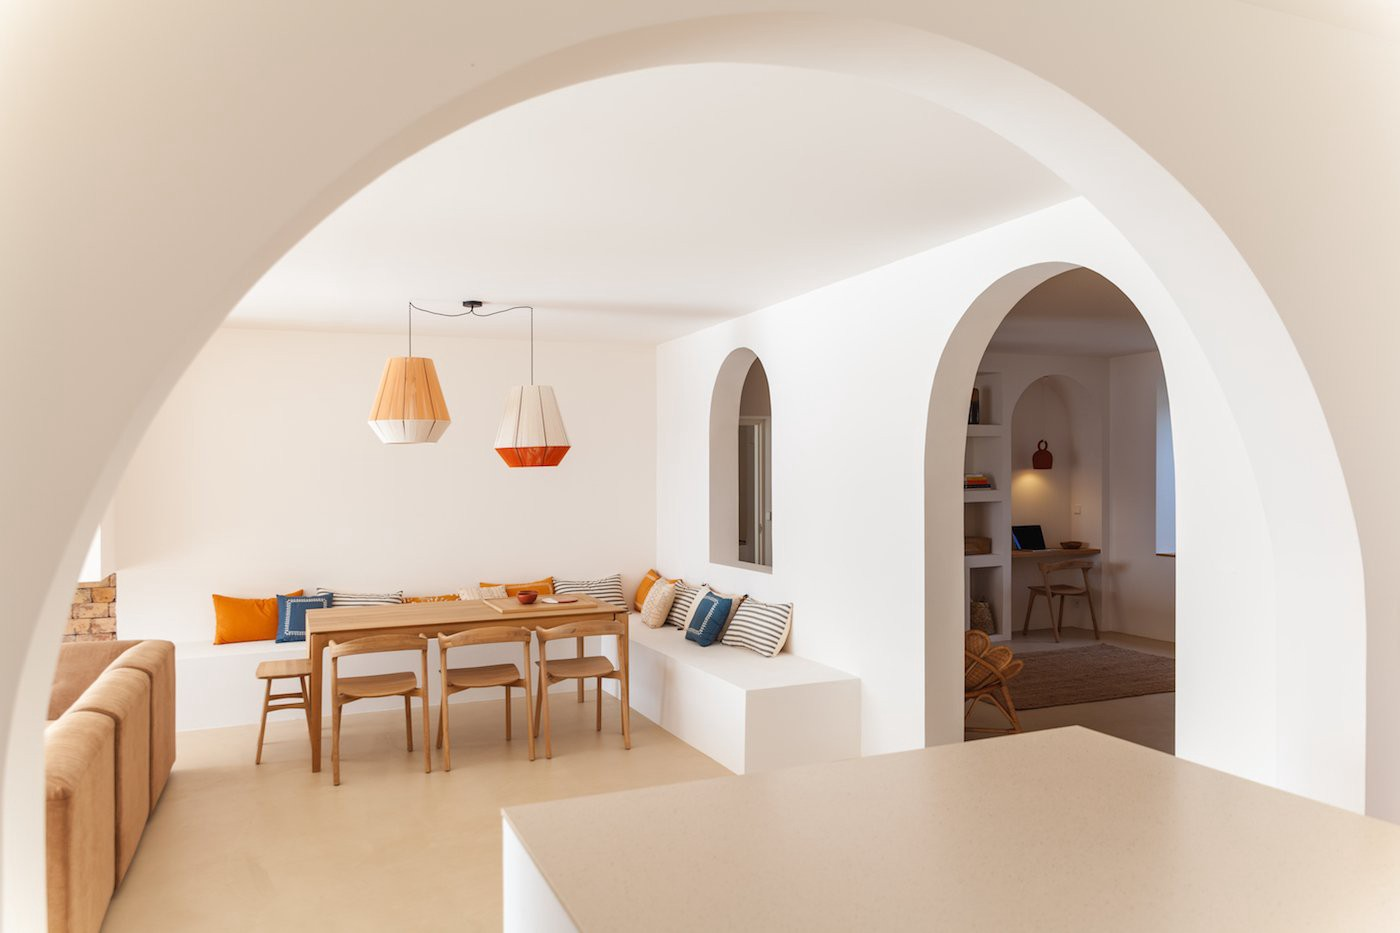 Arched doorways and windows have been introduced into the home to separate areas. Recessed wall niches hold a selection of art, ceramic pots, straw fans, and books. (Photo: Thibaut Dini, Life's A Beach)